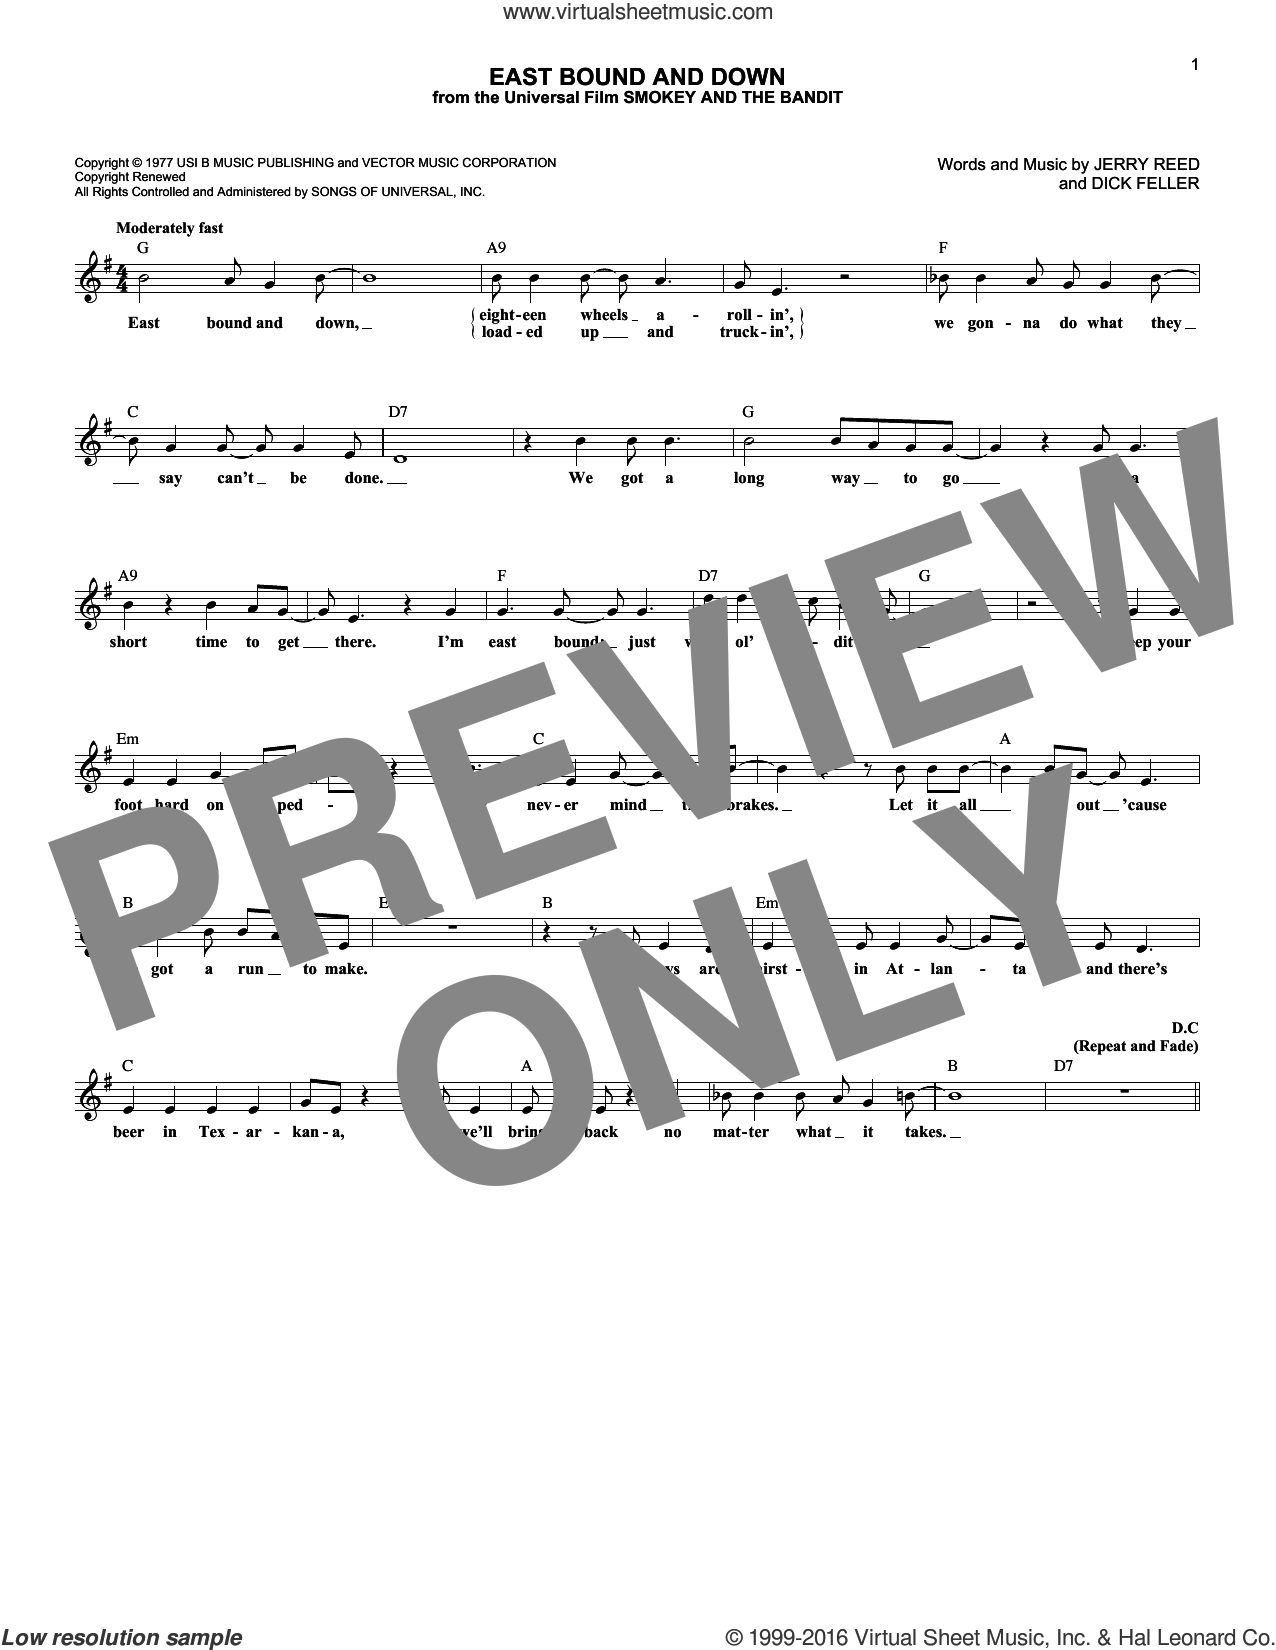 East Bound And Down sheet music for voice and other instruments (fake book) by Jerry Reed. Score Image Preview.